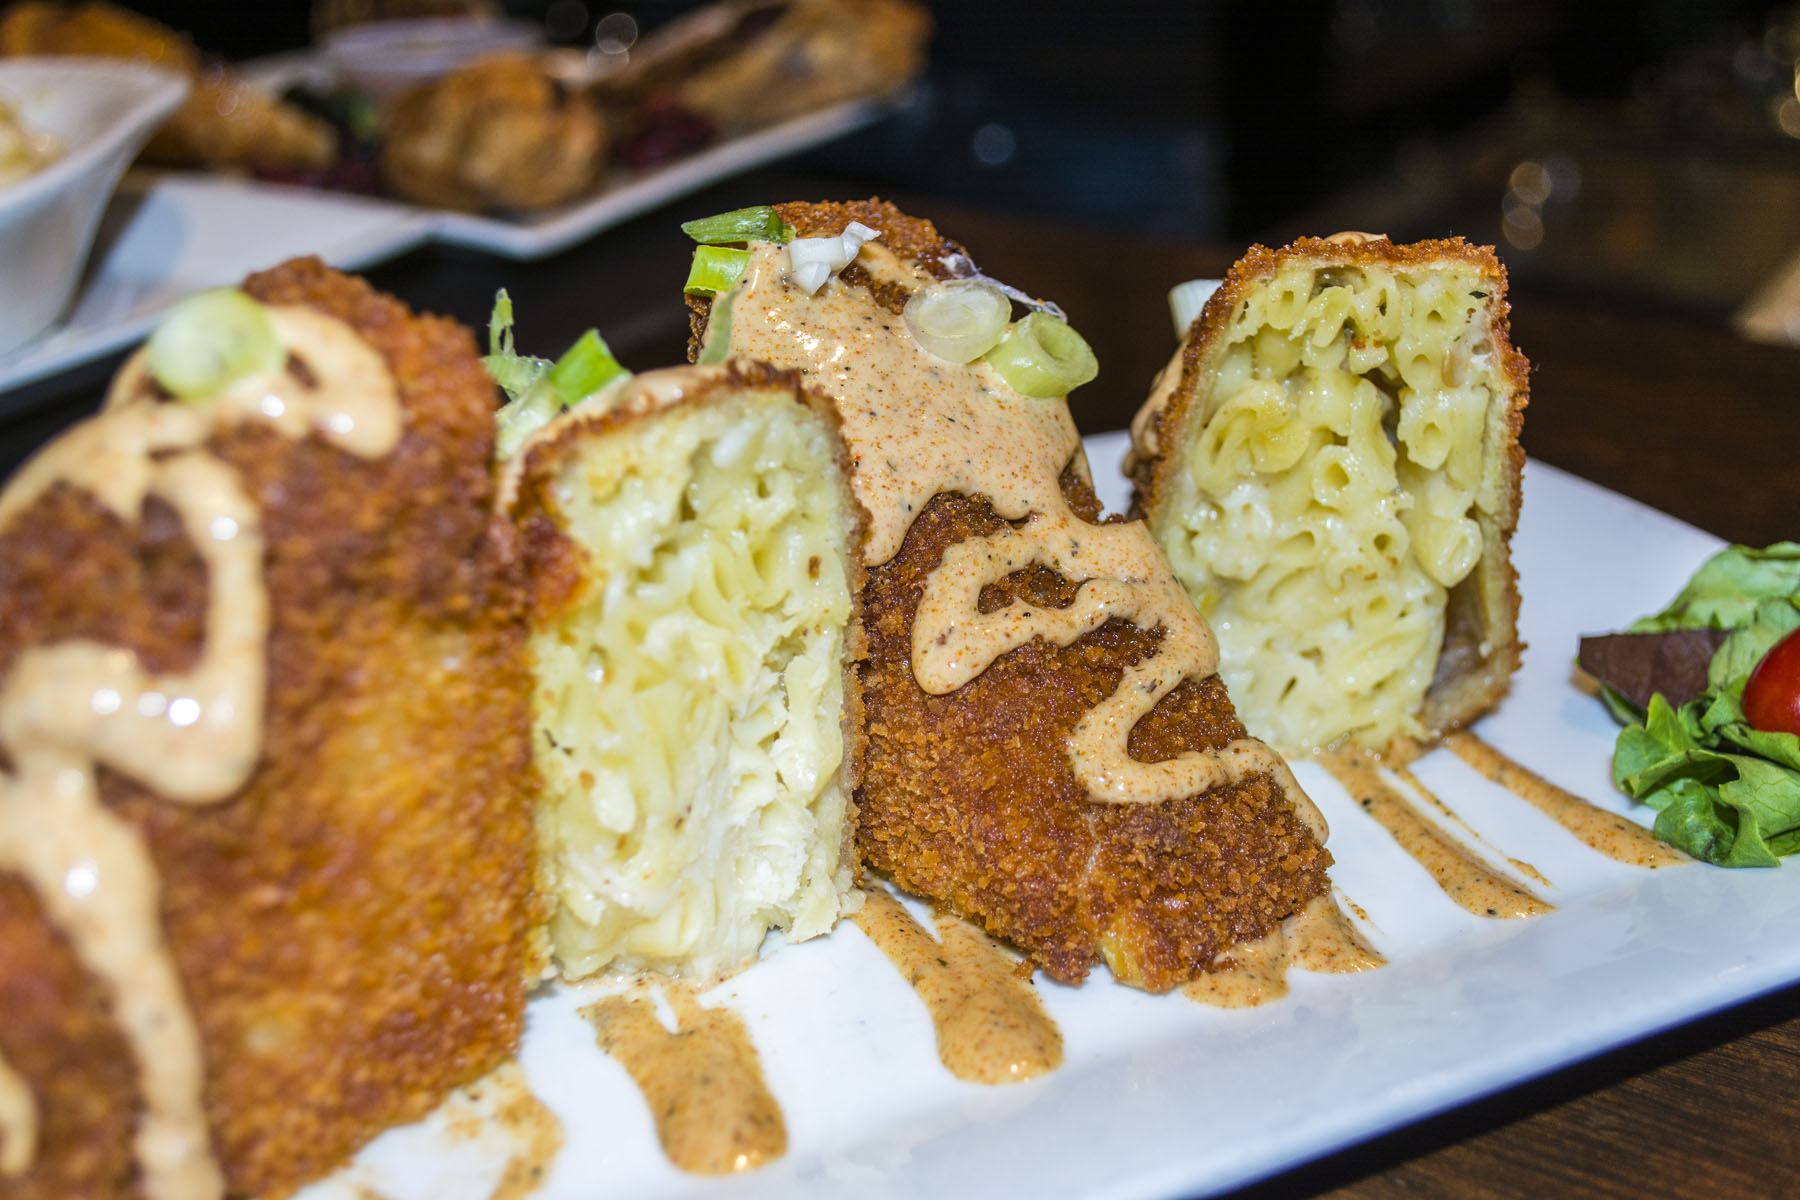 The Fried Mac and Pepper Jack ($8) is drizzled with Cajun ranch sauce.